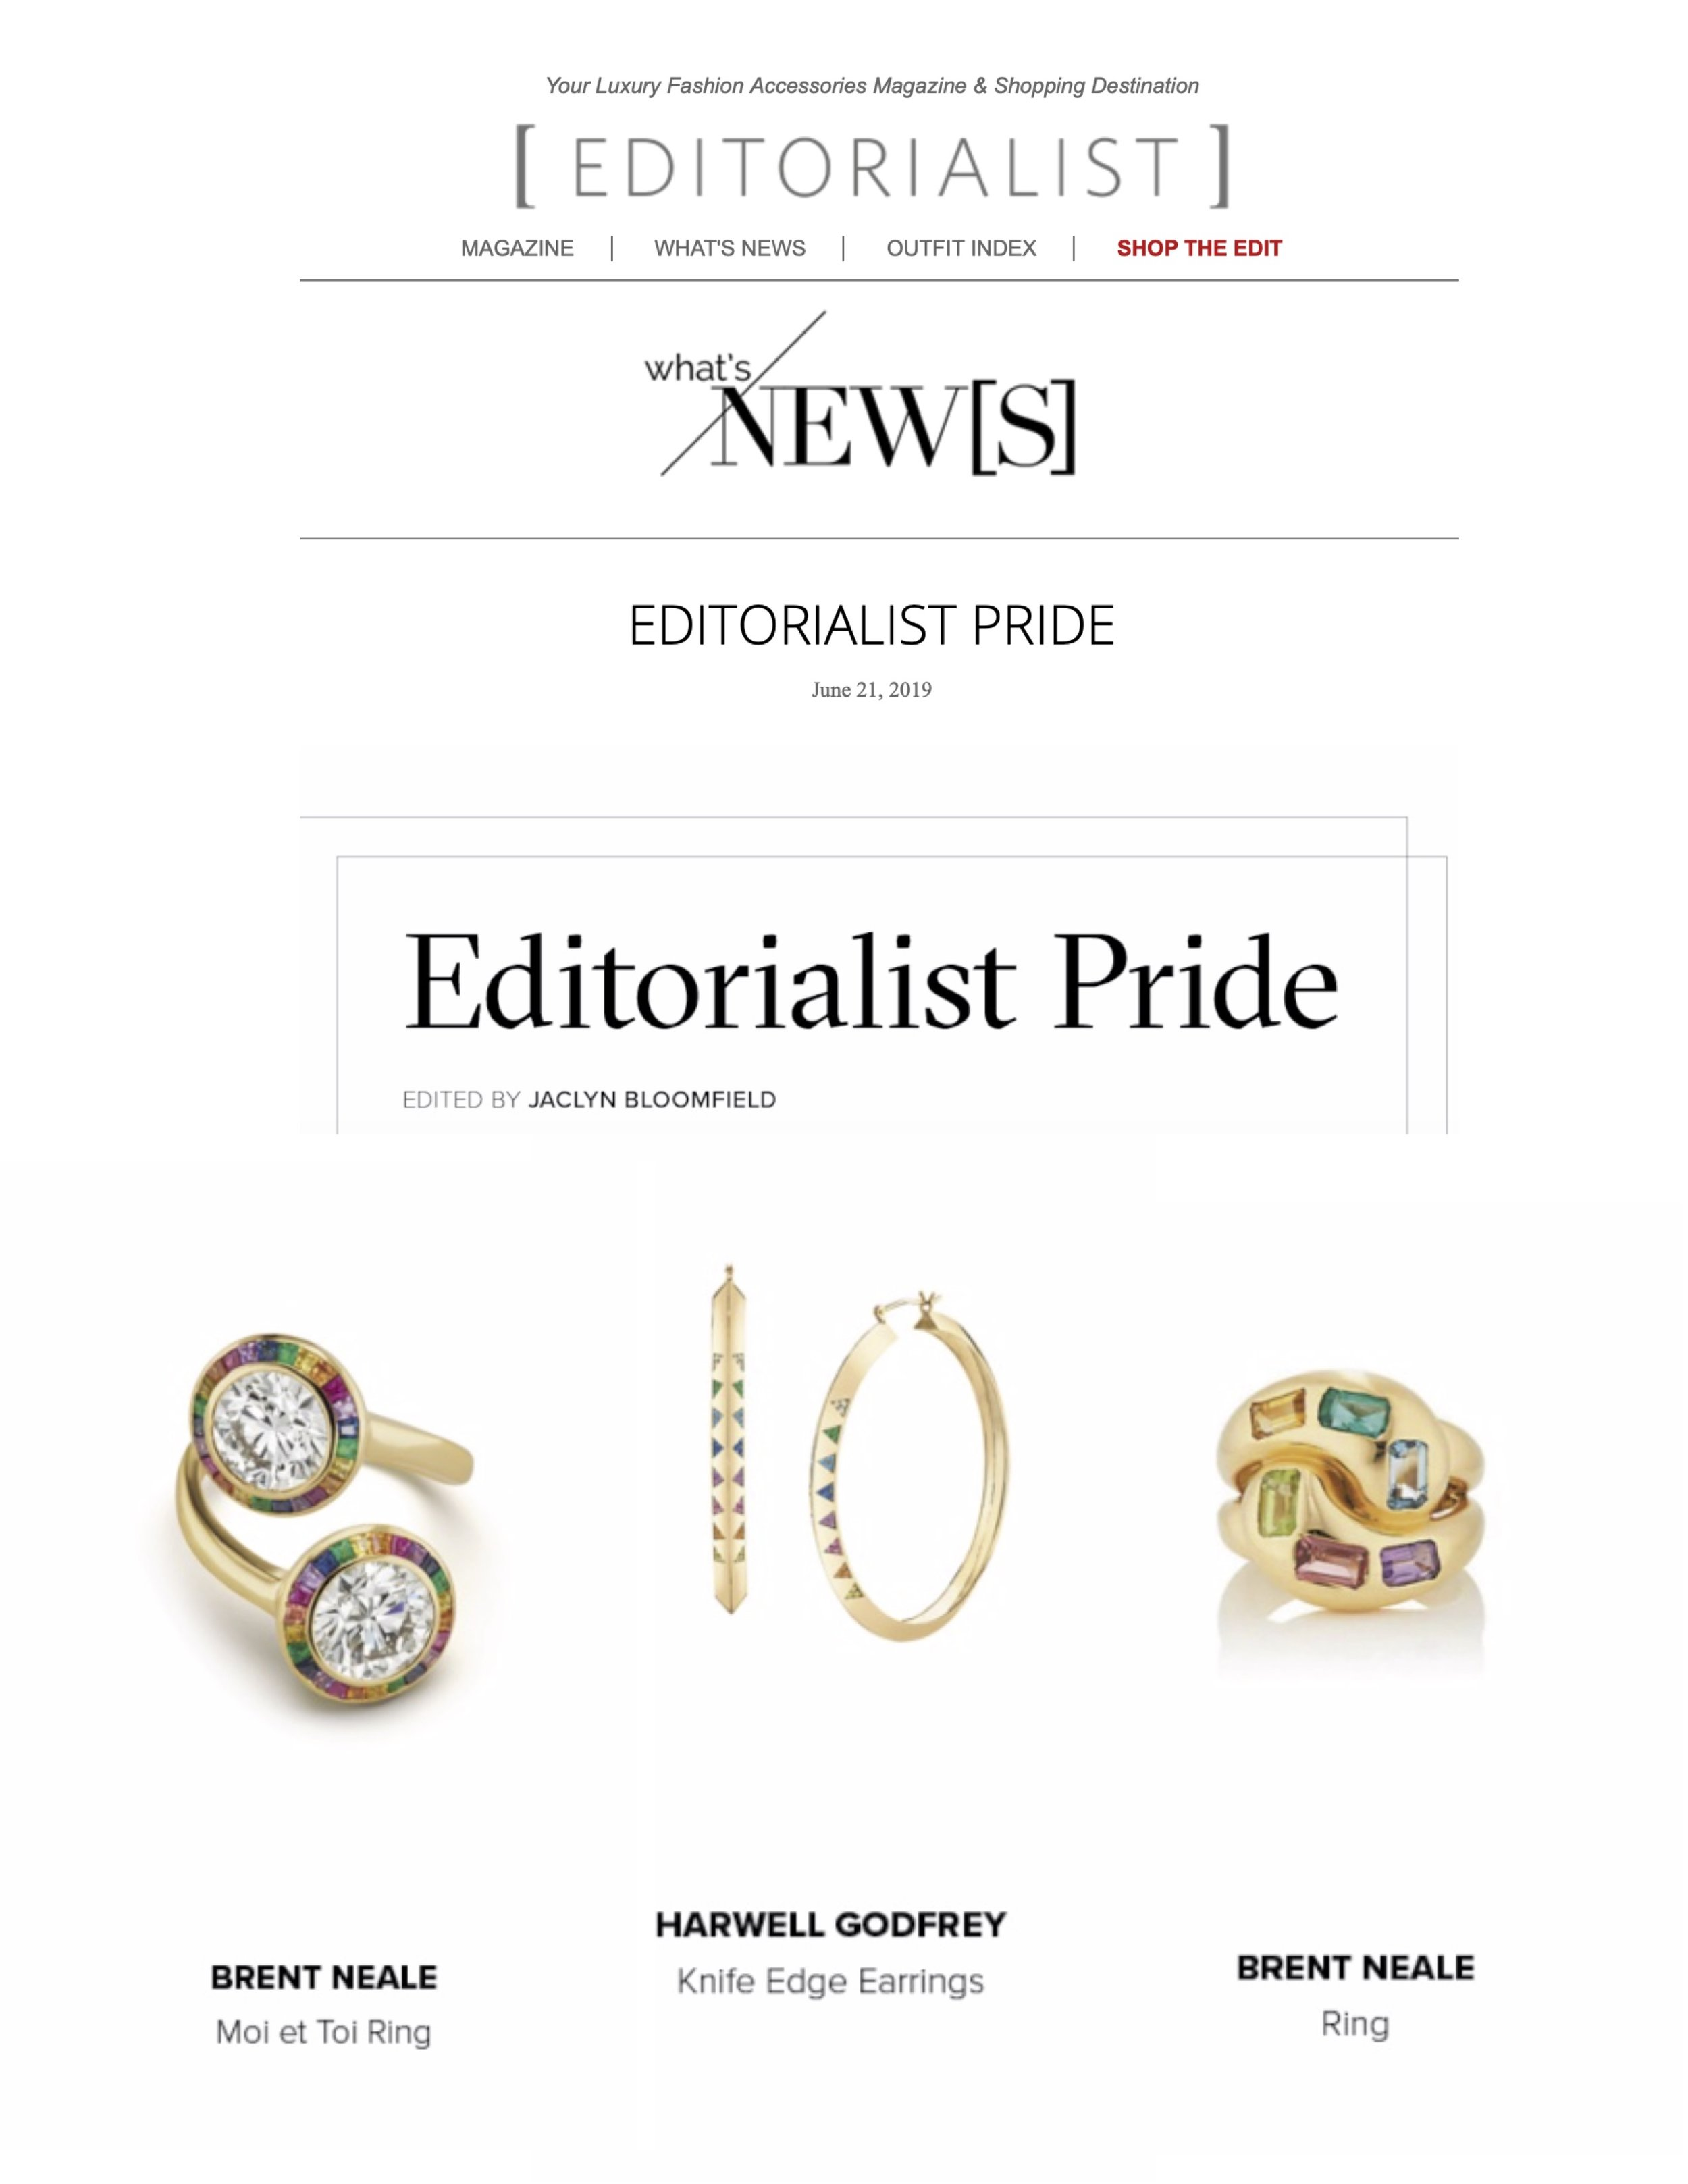 Harwell Godfrey + Brent Neale on Editorialist.com, June 2019